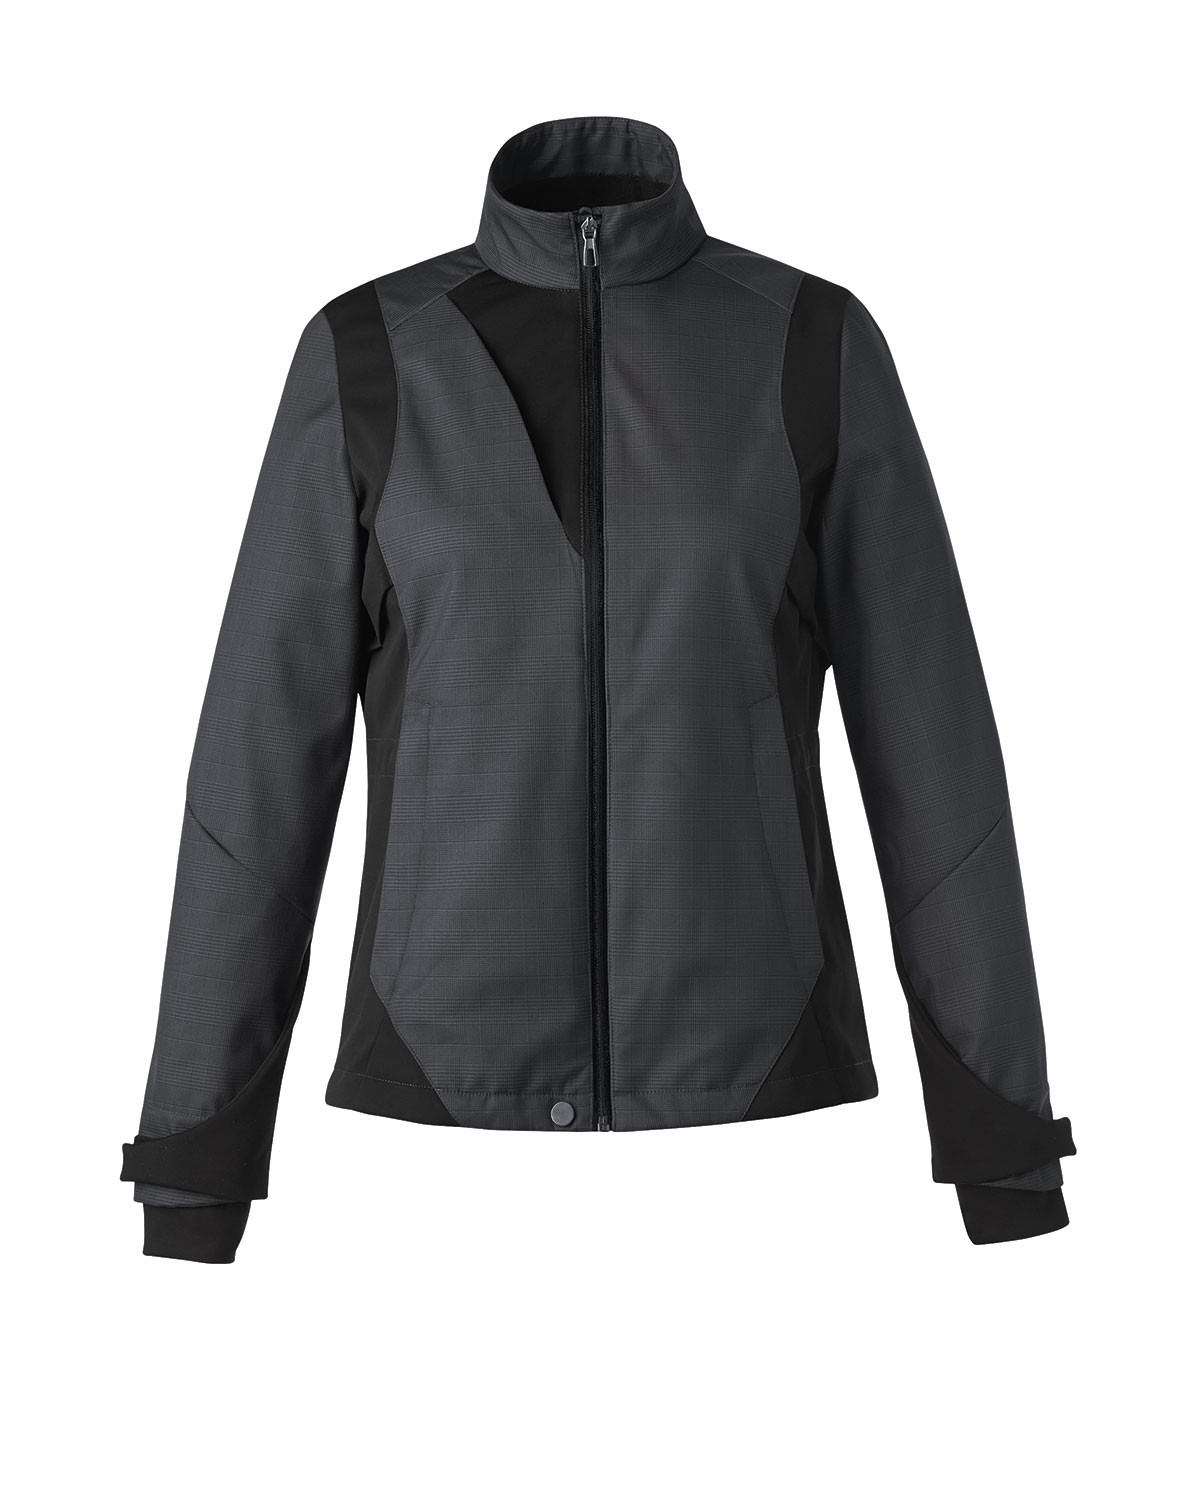 Ash City Light Bonded Jackets 78686 - Commute Ladies'...